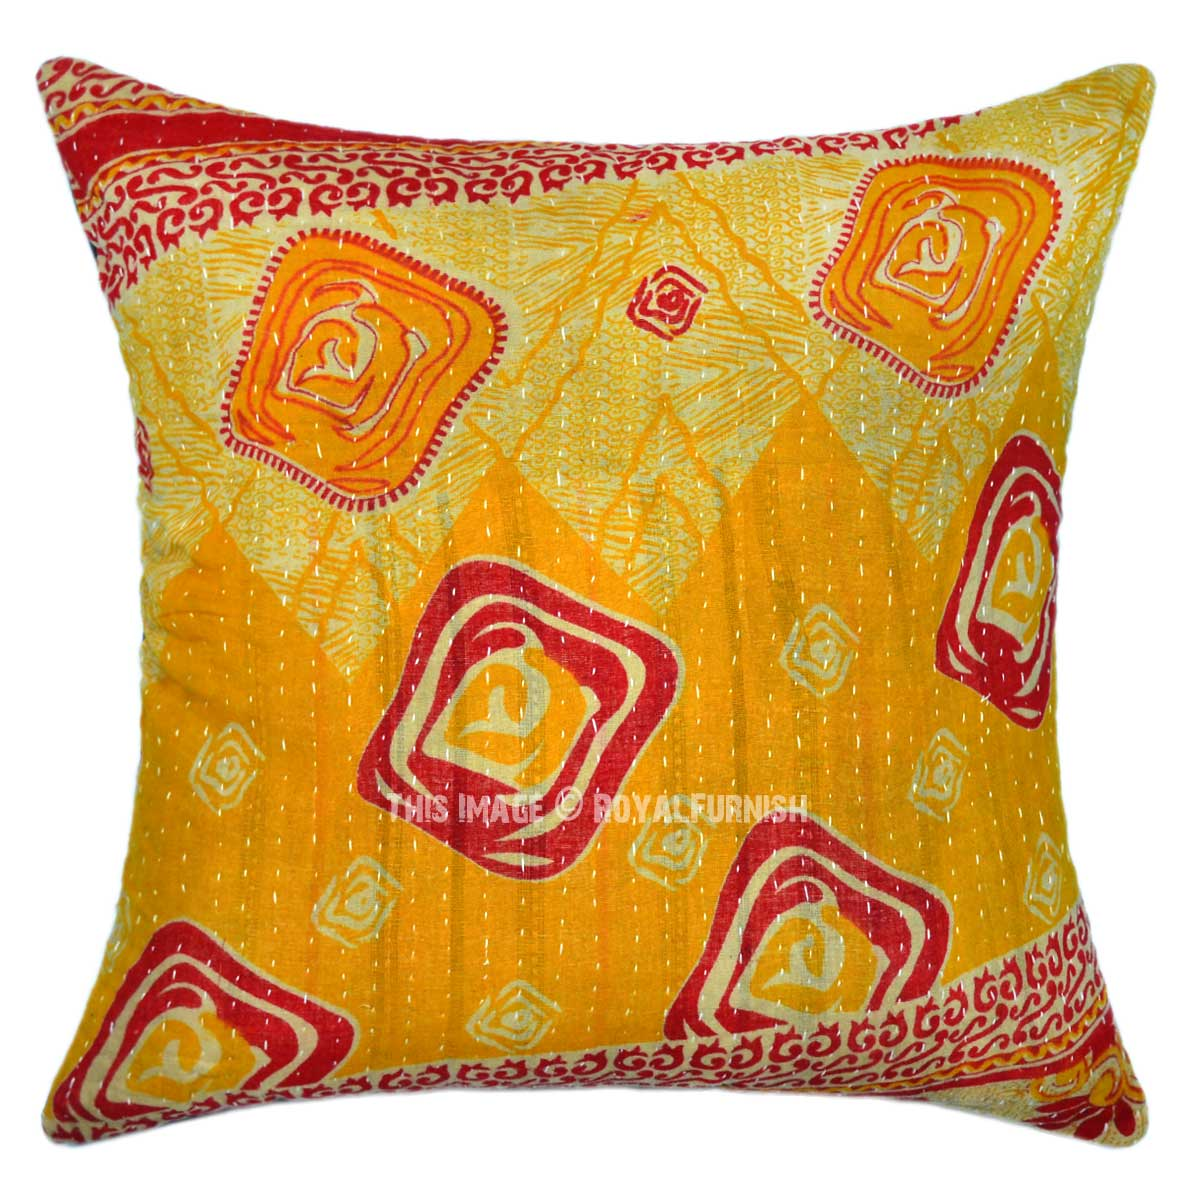 Fabric For Throw Pillow Covers : Yellow Multi Abstract Old Fabric Vintage Kantha Throw Pillow Cover - RoyalFurnish.com